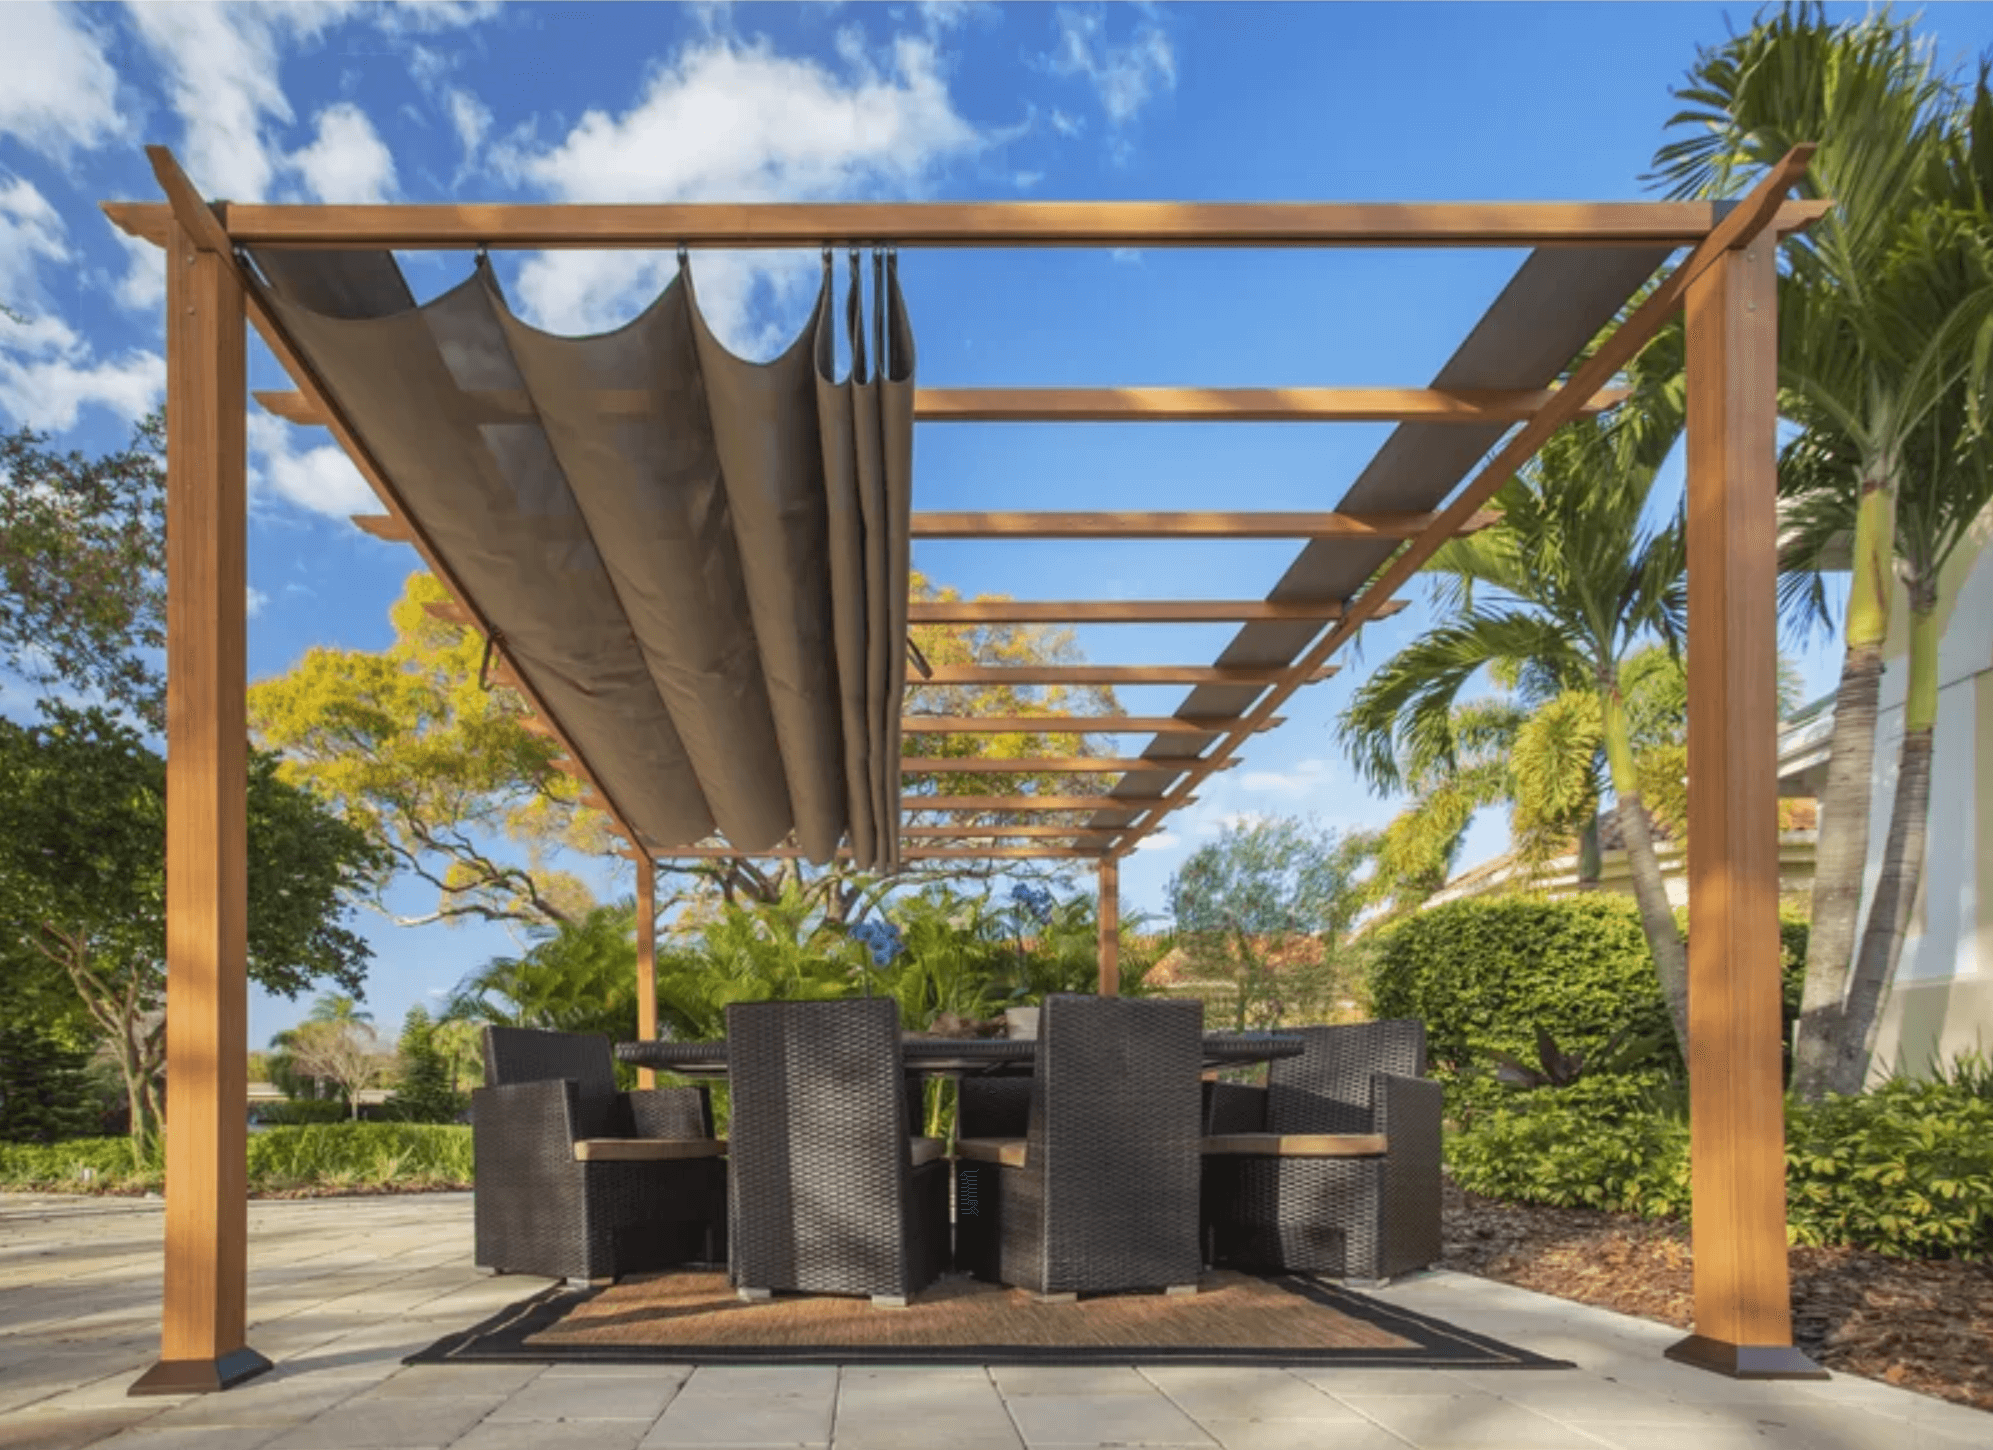 Best Aluminum Pergola (Our 2019 Top Picks) • Insteading on pergola with fire pit, metal carports attached to house, pergola attached to ranch style homes, trellis attached to house, patio covers attached to house, adding a pergola to a ranch style house, garden sheds attached to house, rustic pergolas attached to house, building a pergola attached to the house, pergola off house, greenhouse attached to house, pergola side of house, covered pergola connected to house, outdoor pergolas attached to house, black pergola attached to house, pergola in front of garage, outdoor kitchen attached to house, gazebo attached to house, pergola kits, vinyl pergolas attached to house,